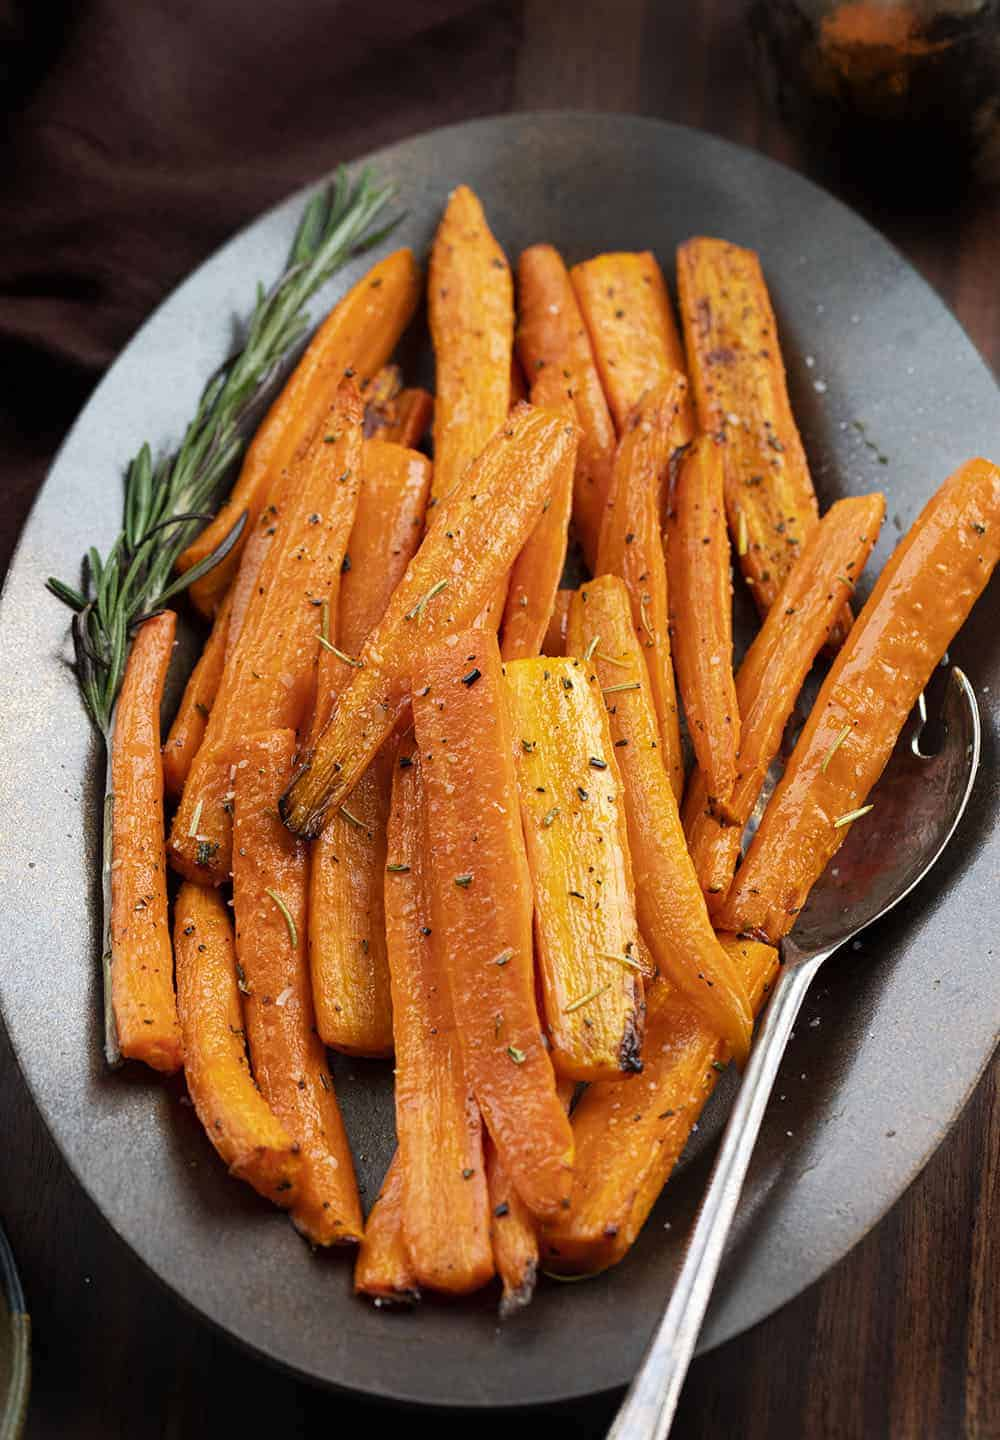 Plate of Air Fryer Carrots and Spoon